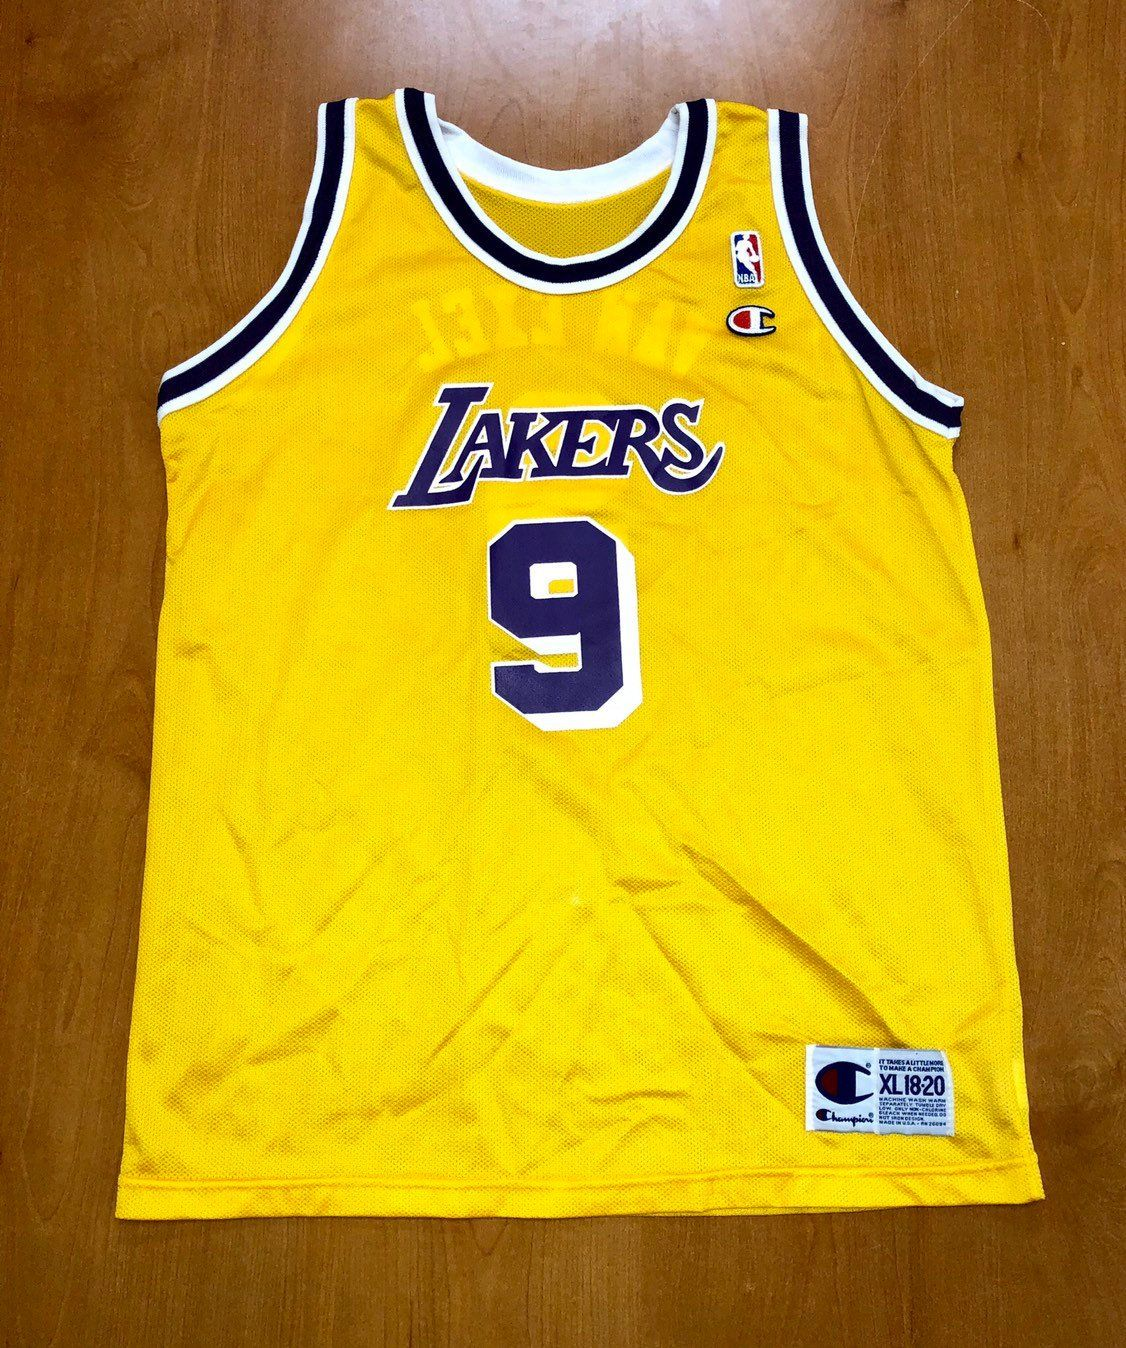 Vintage 1995 1998 Nick Van Exel Los Angeles Lakers Champion Jersey Size Youth Extra Large Shaquille O Neal Magi Nick Van Exel La Lakers Jersey Champion Shirt